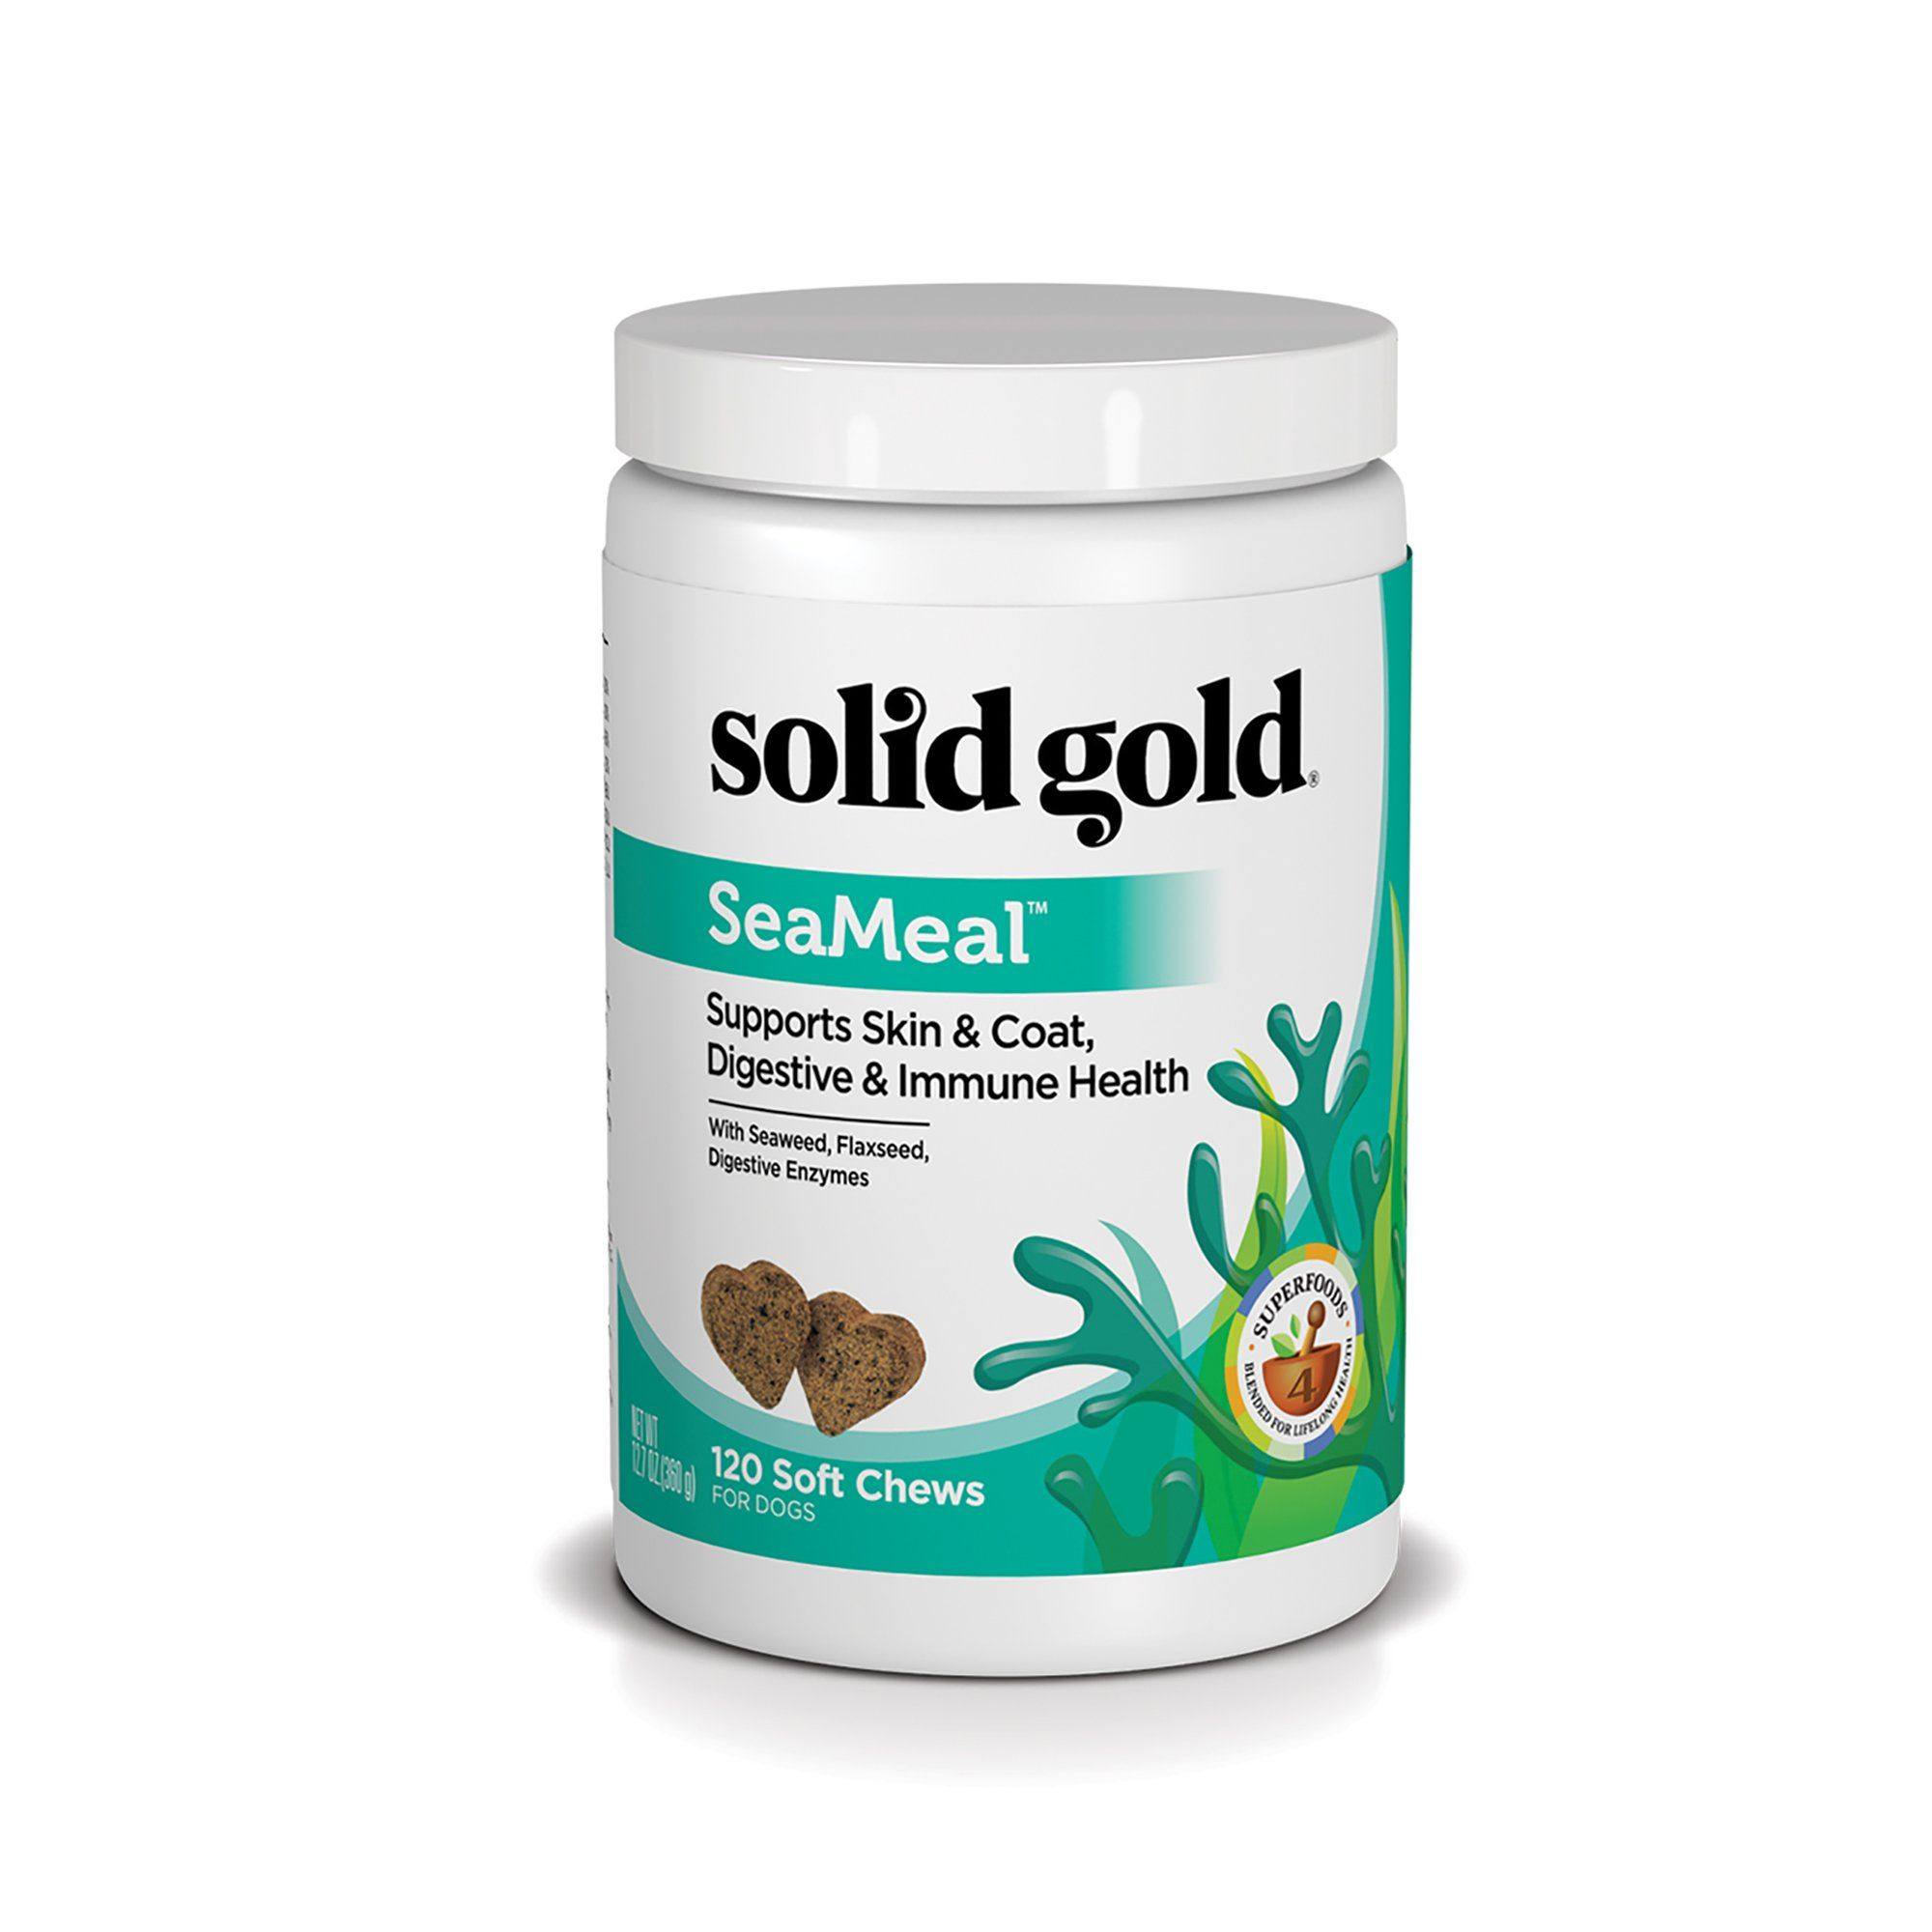 Solid Gold Skin and Coat Digestive and Immune Health Dog